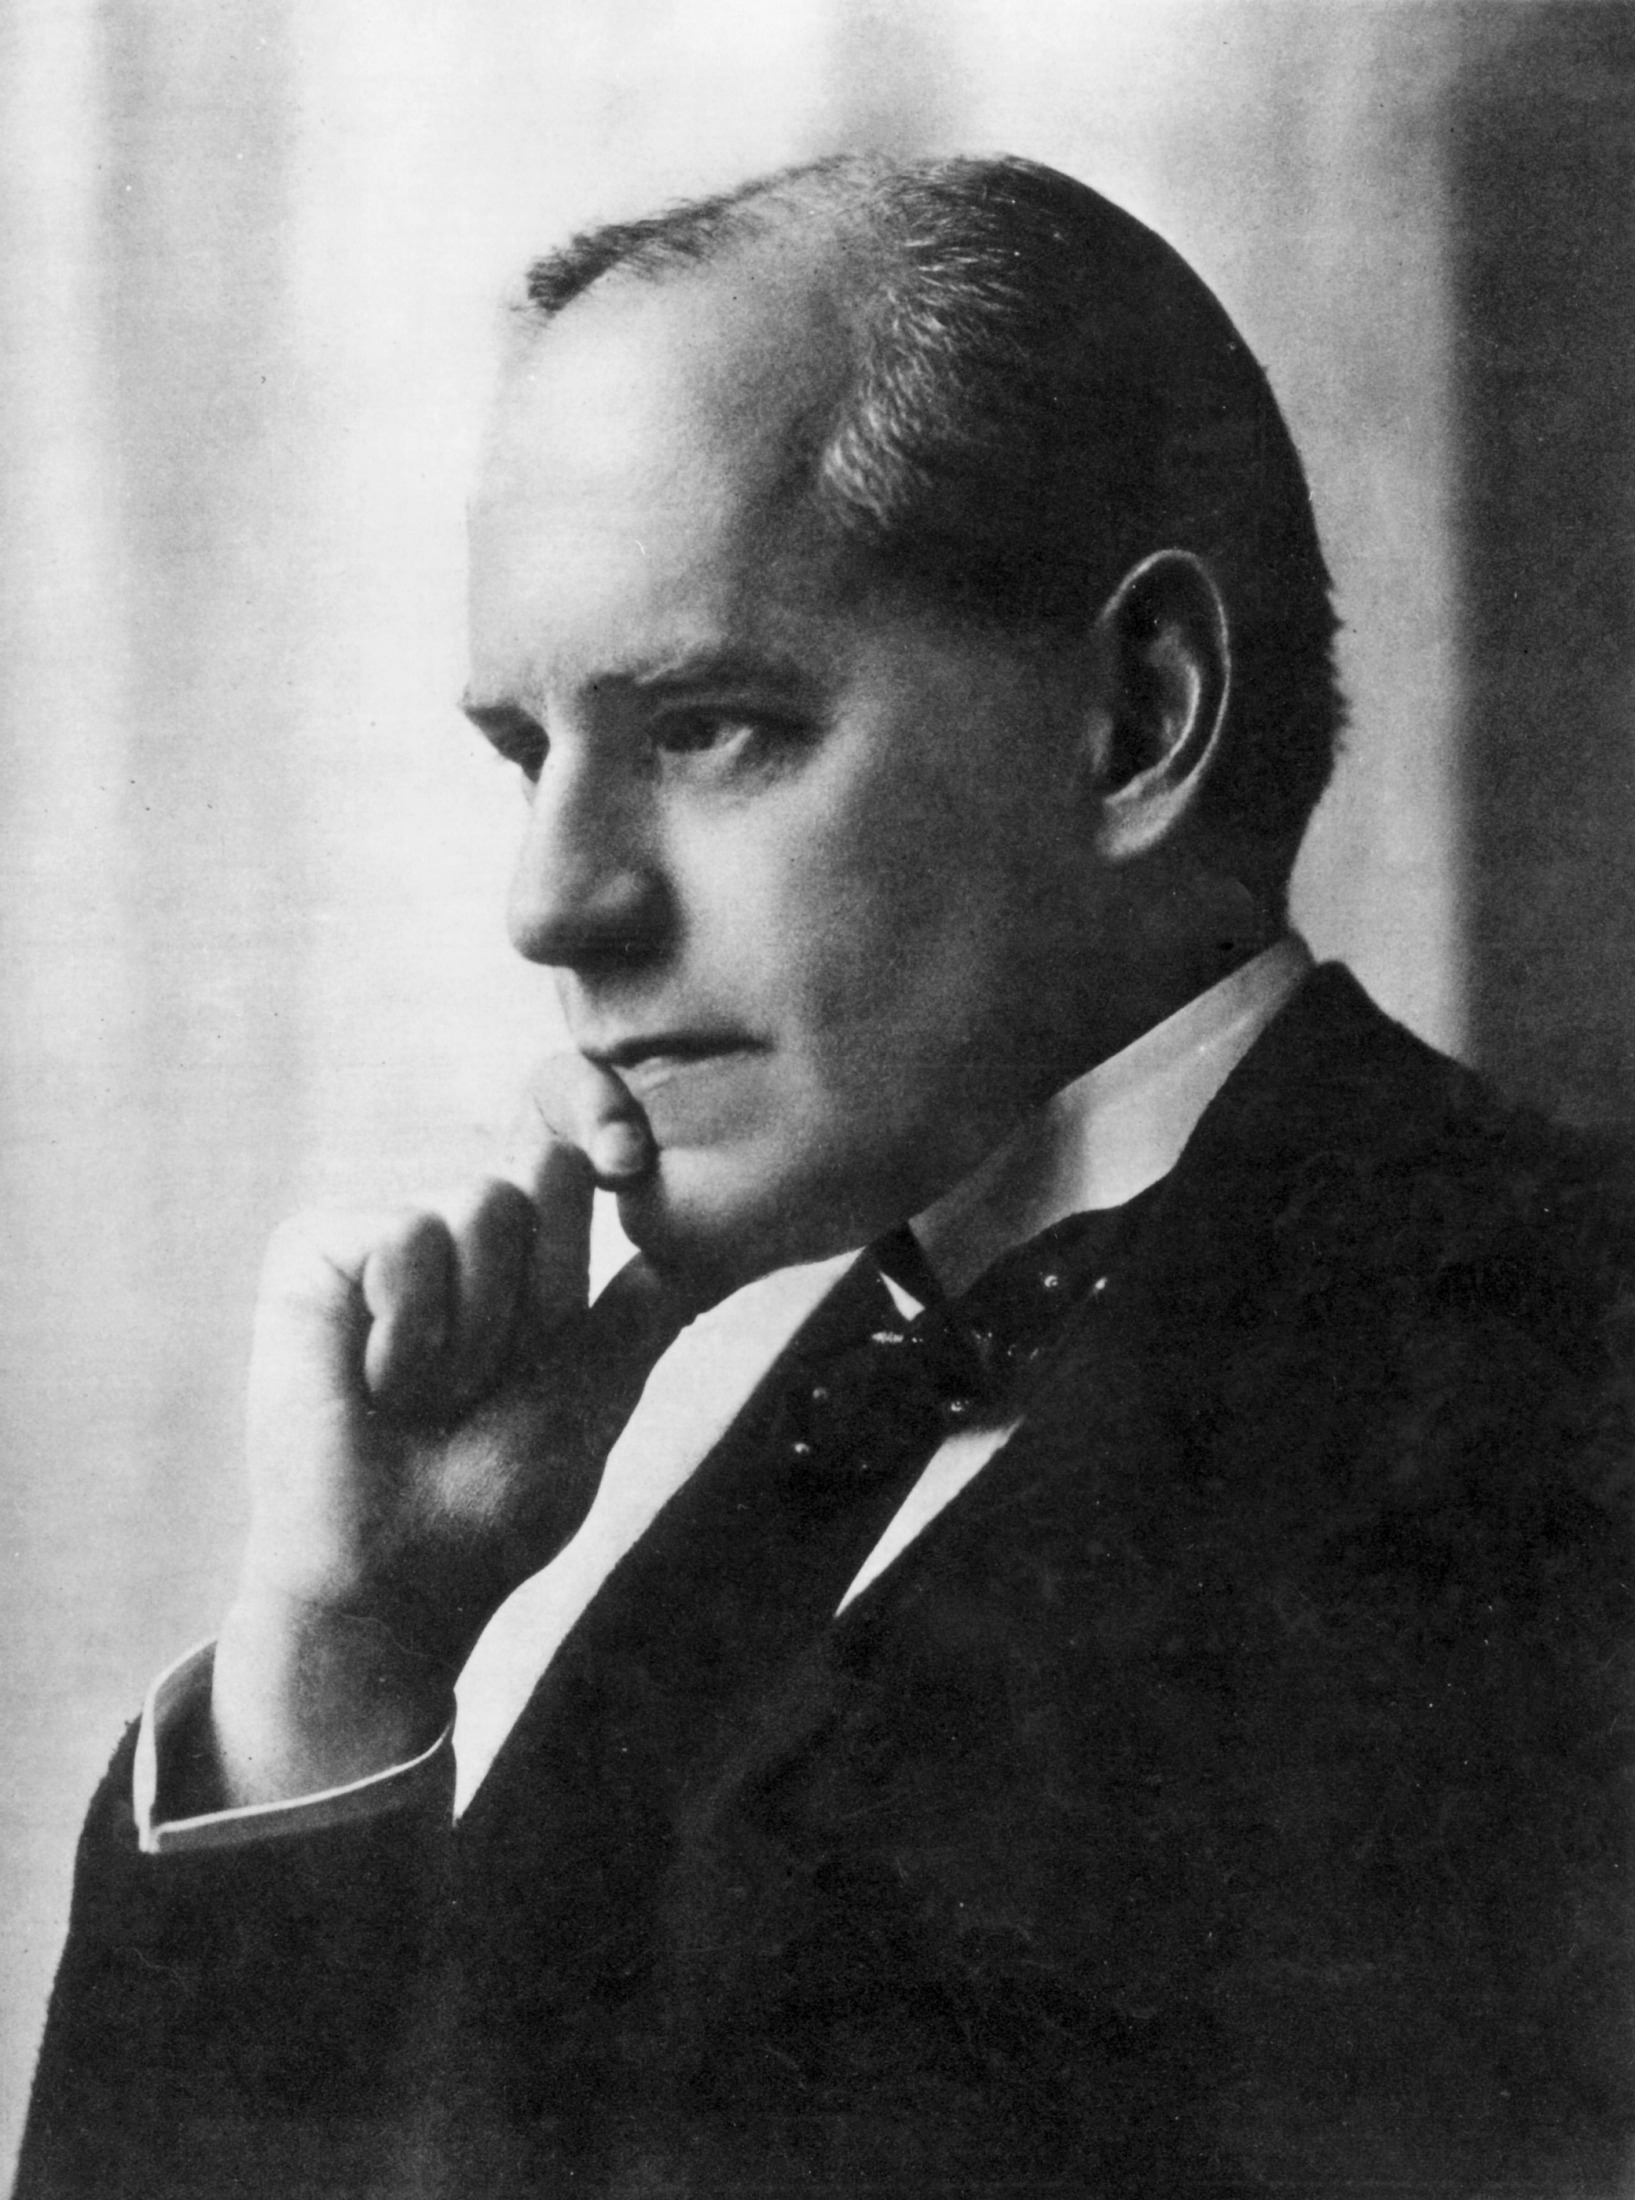 summary of justice by galsworthy John galsworthy om (/ ˈ ɡ ɔː l z w ɜːr ð i / 14 august 1867 – 31 january 1933) was an english novelist and playwrightnotable works include the forsyte saga (1906–1921) and its sequels, a modern comedy and end of the chapterhe won the nobel prize in literature in 1932.